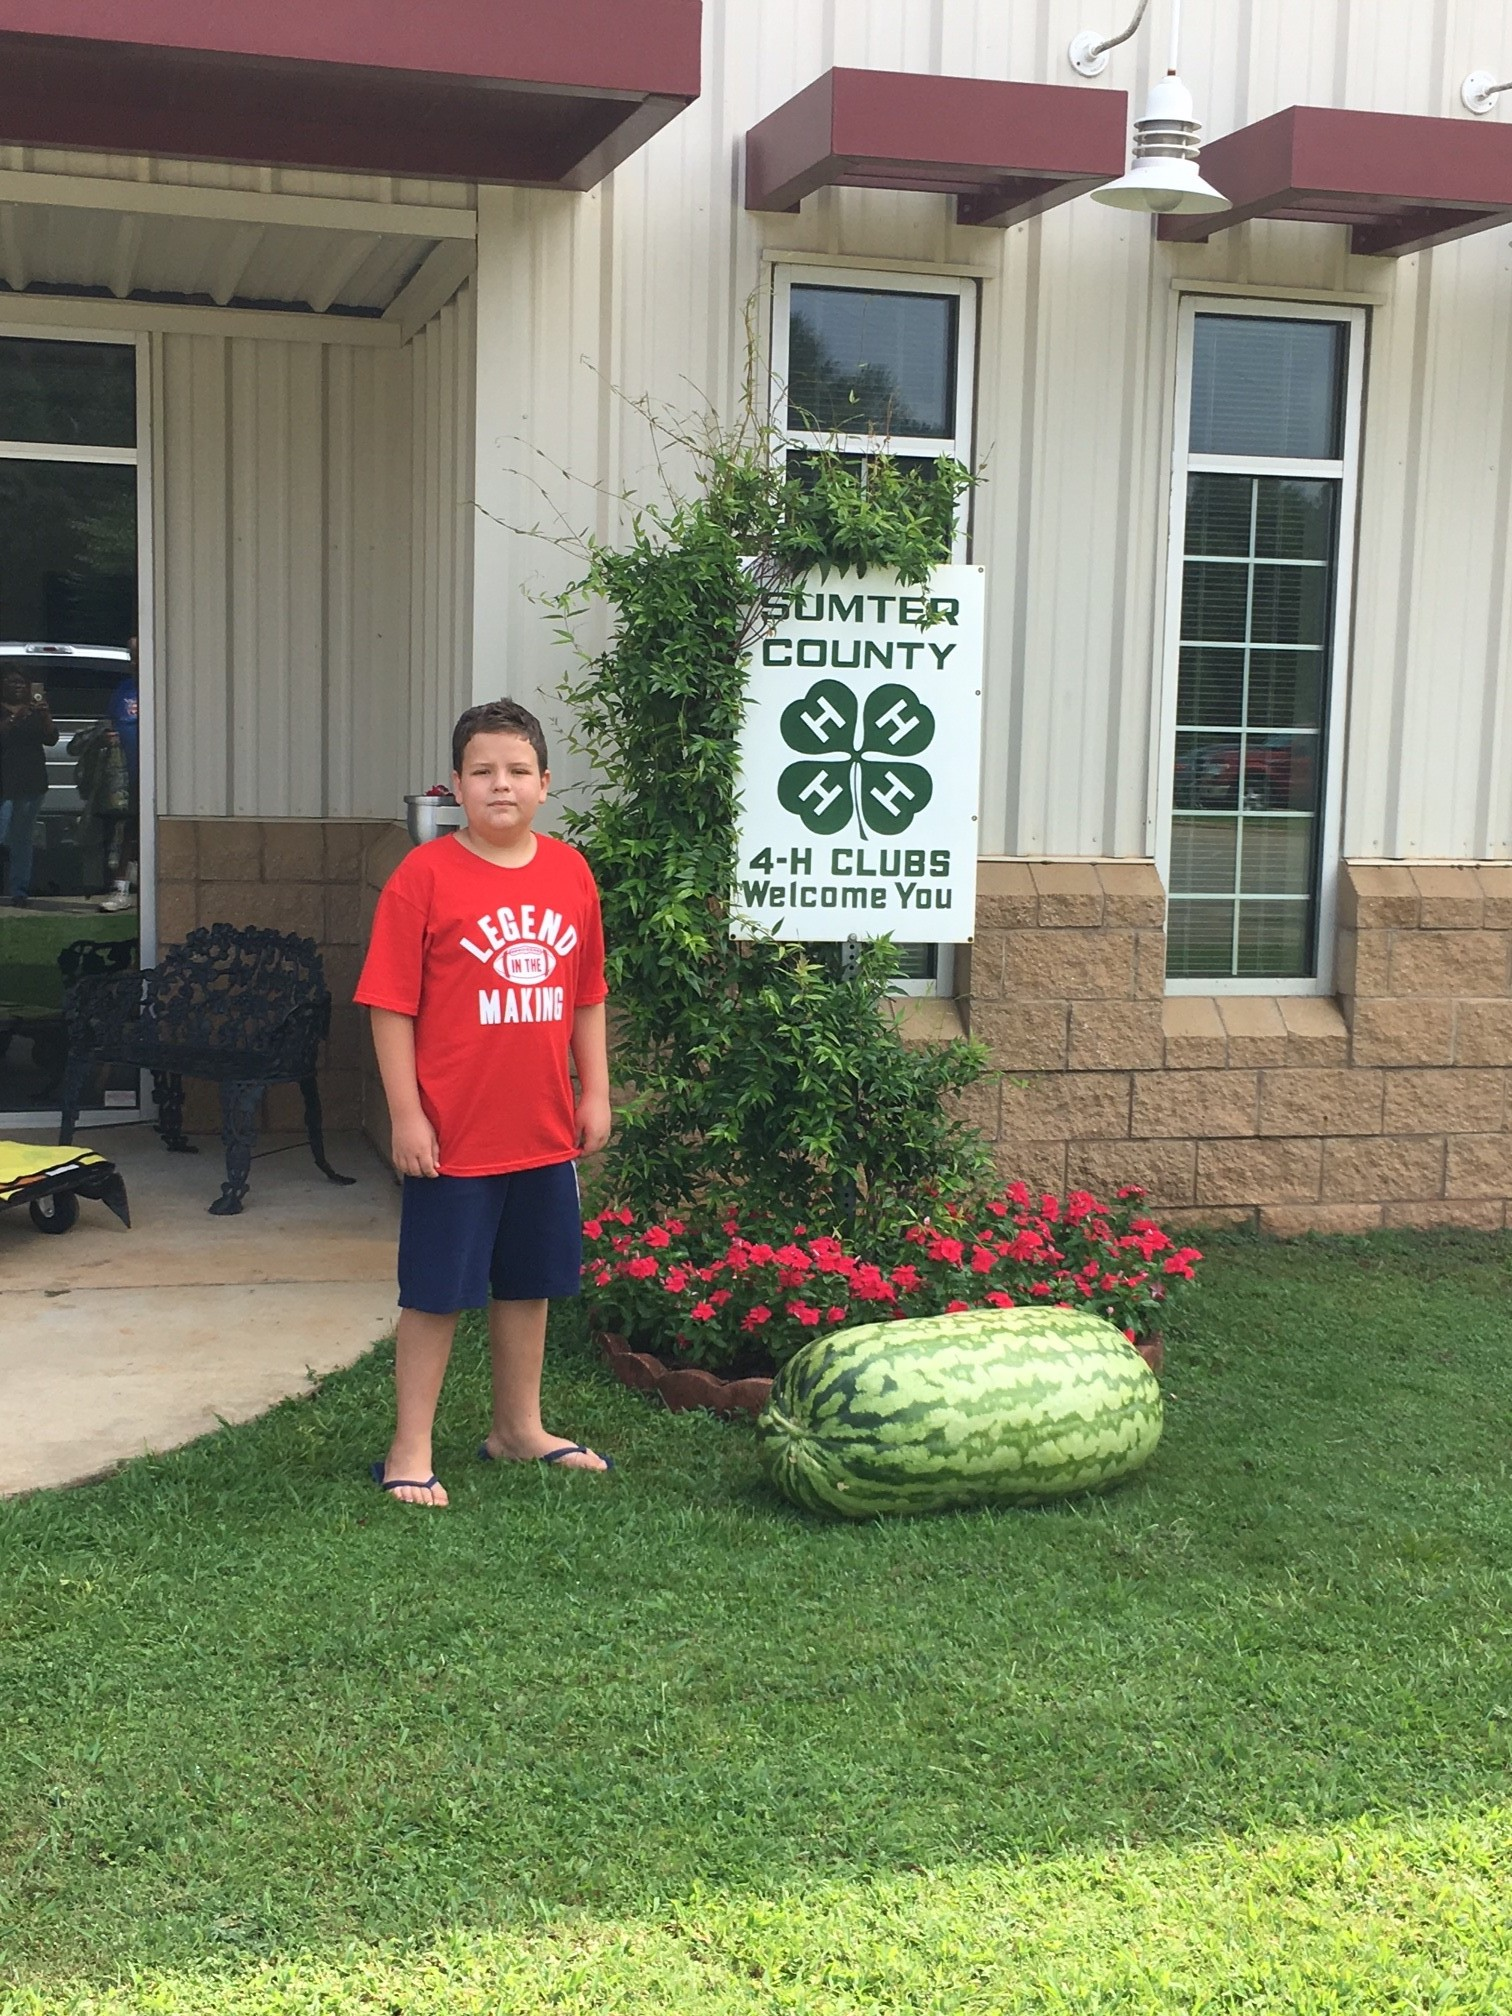 John Gorton of Sumter County has won the Georgia 4-H 2018 Watermelon Growing Contest with at 168.6-pound melon.